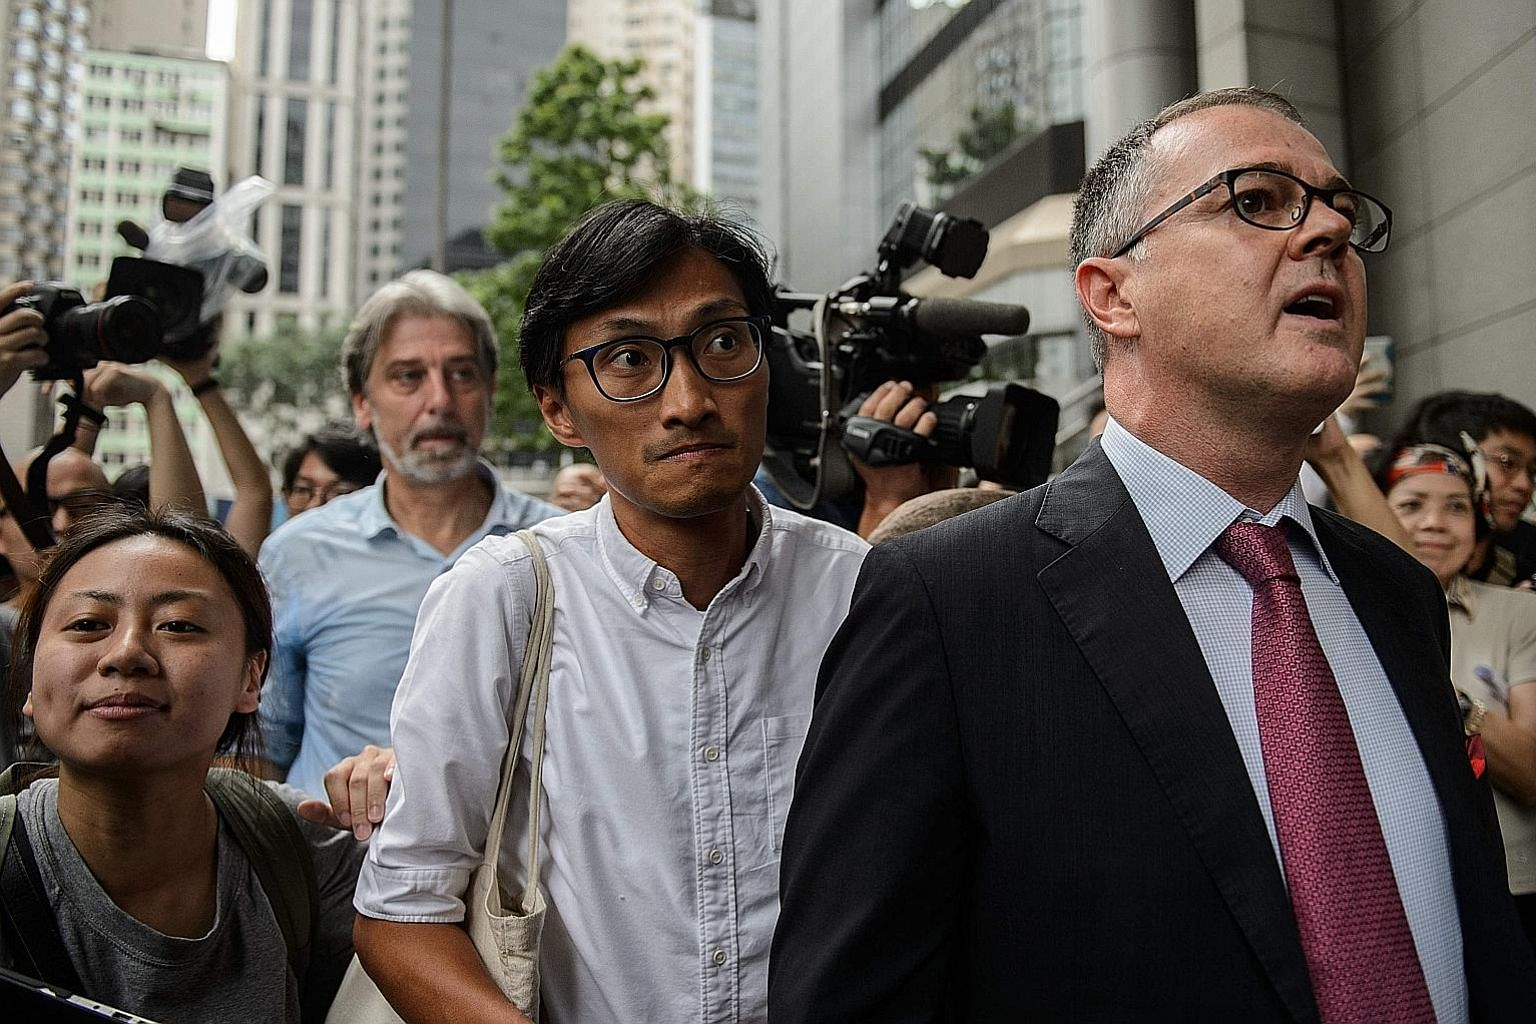 """Social activist-turned-lawmaker Eddie Chu (centre) and lawyer Michael Vidler arriving at Wan Chai Police headquarters yesterday. Mr Chu said he had received """"credible death threats"""" against him and his family."""